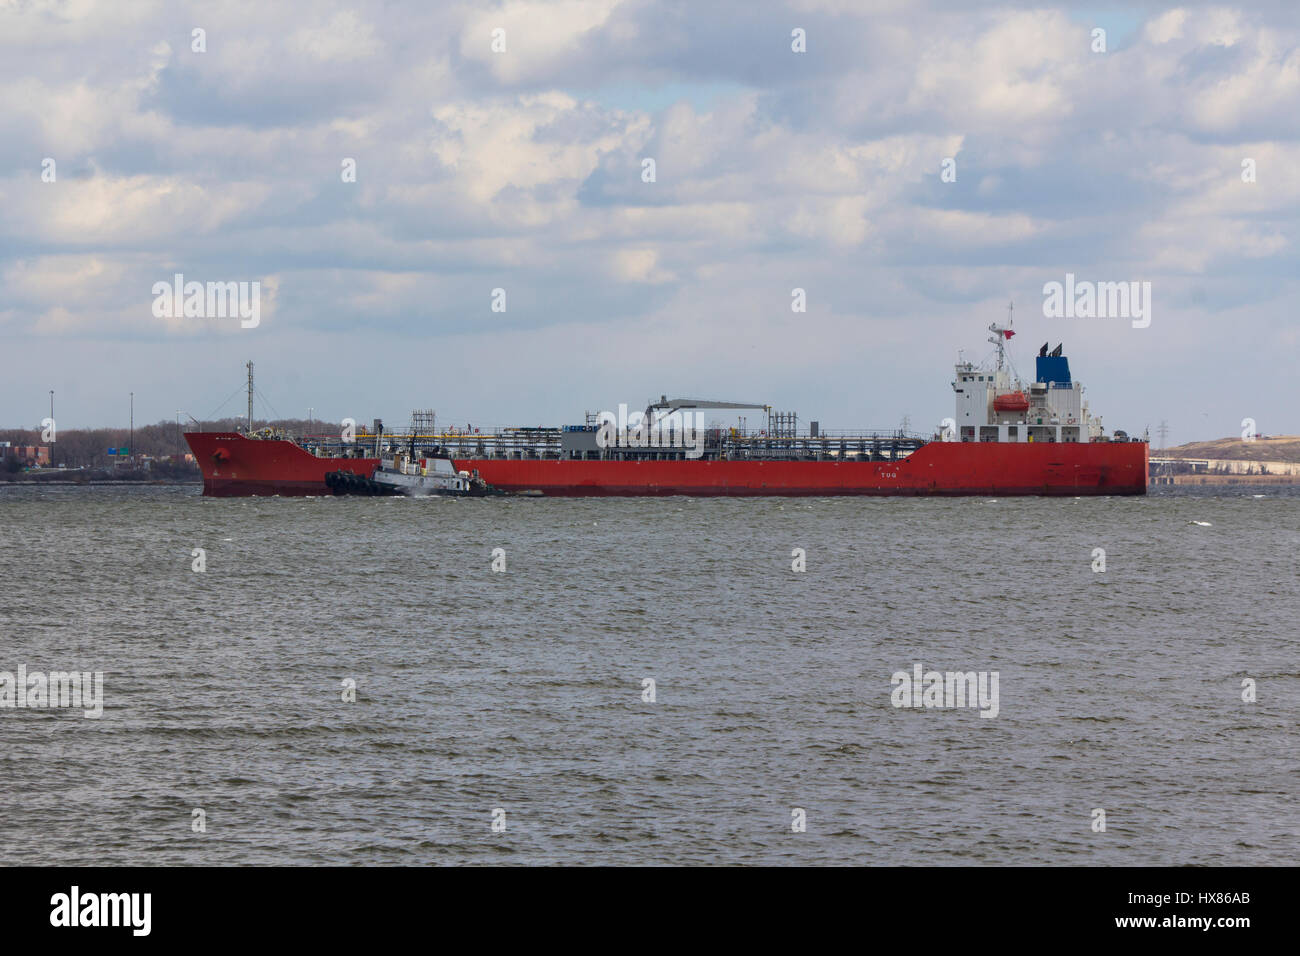 Tug assisting tanker near Baltimore on Chesapeake Bay - Stock Image